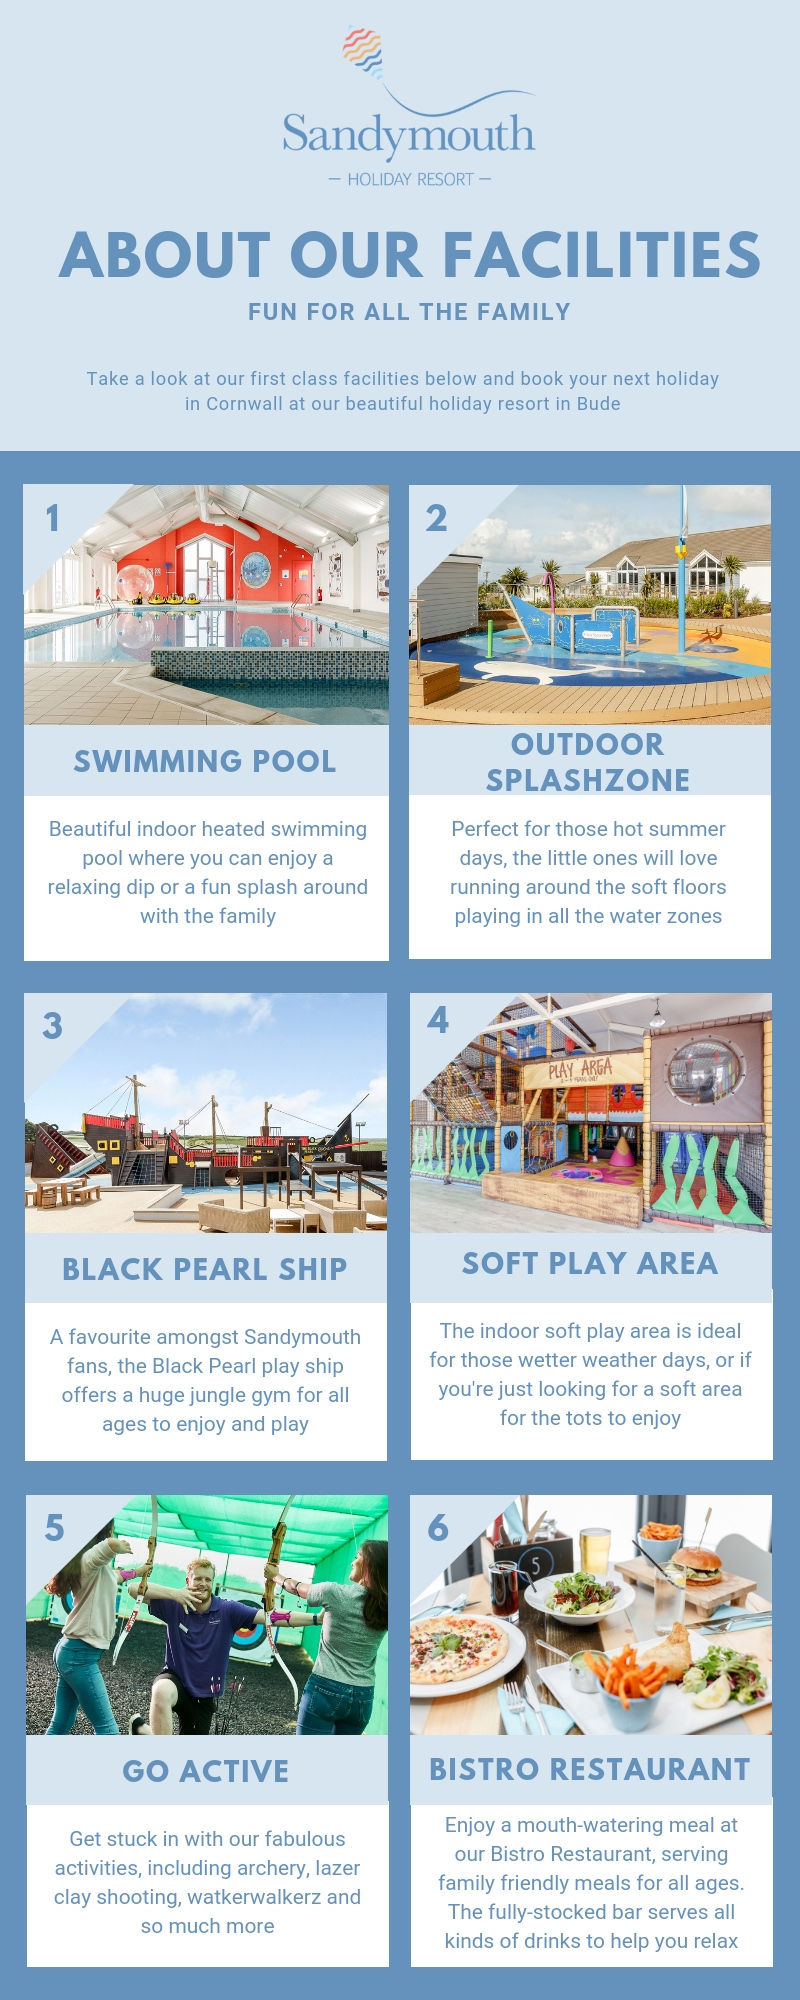 infographic showing all the different facilities at Sandymouth